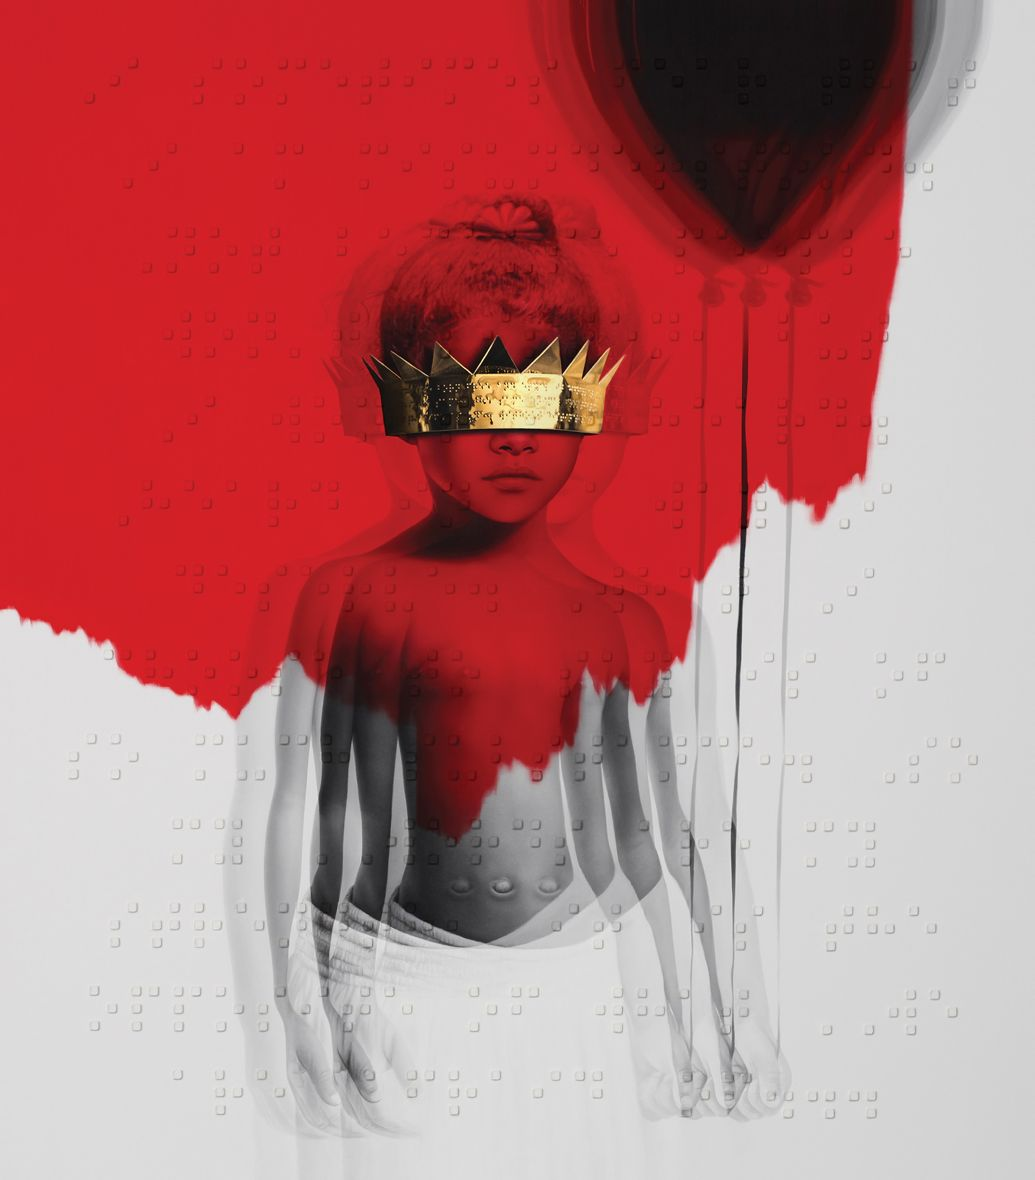 Rihanna Finally Releases The Title And Album Art For Her 8th